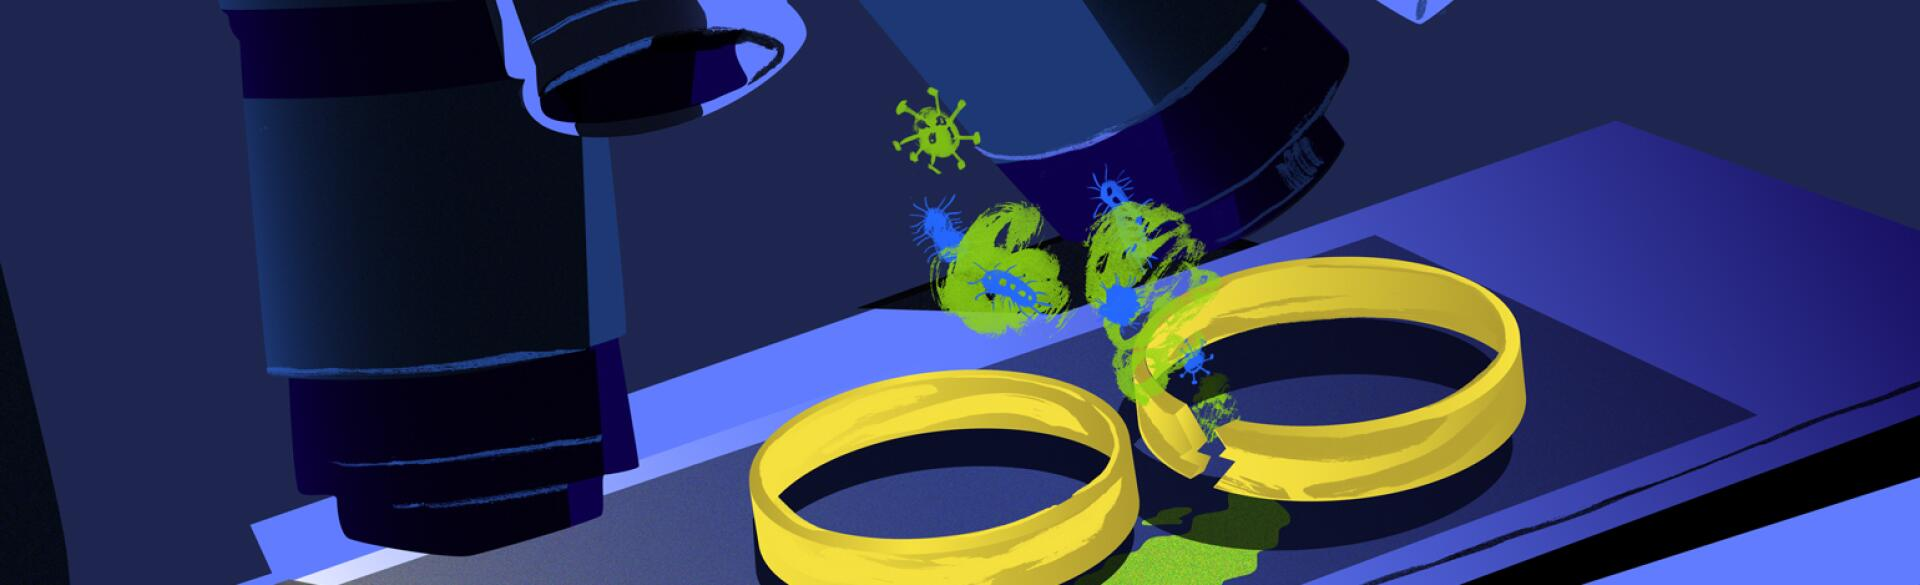 illustration of microscope analyzing wedding rings and hpv virus